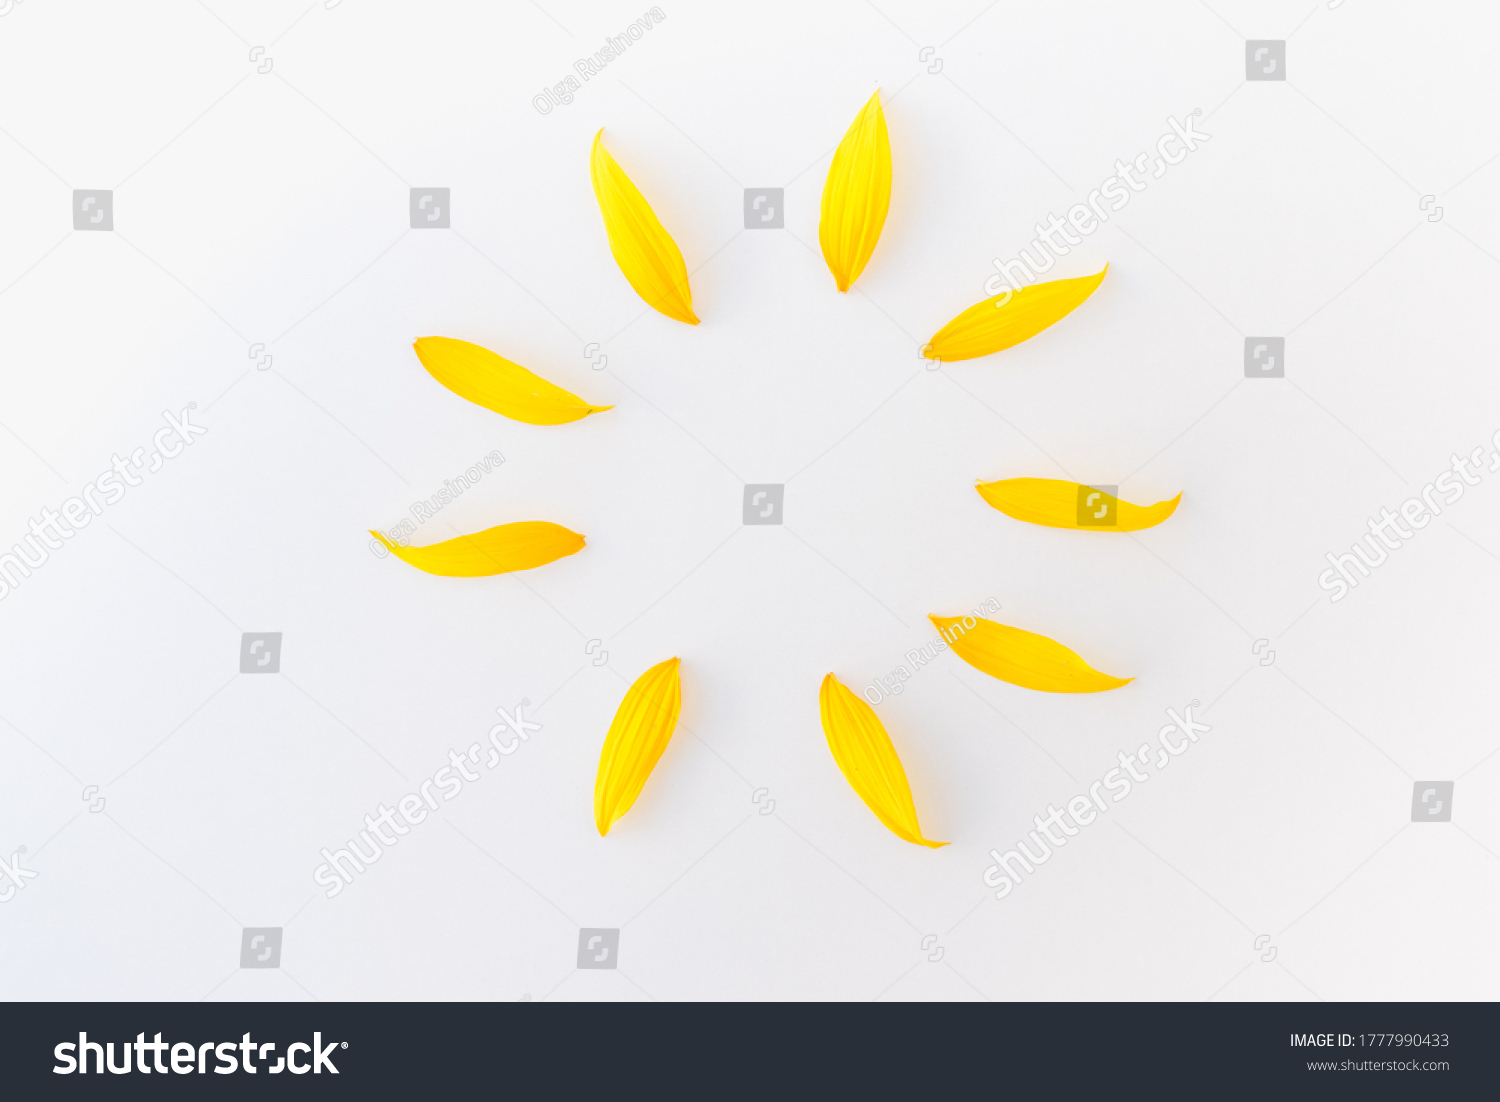 sunflower petals, yellow petals on white background, sun from sunflower petals, background with yellow petals #1777990433